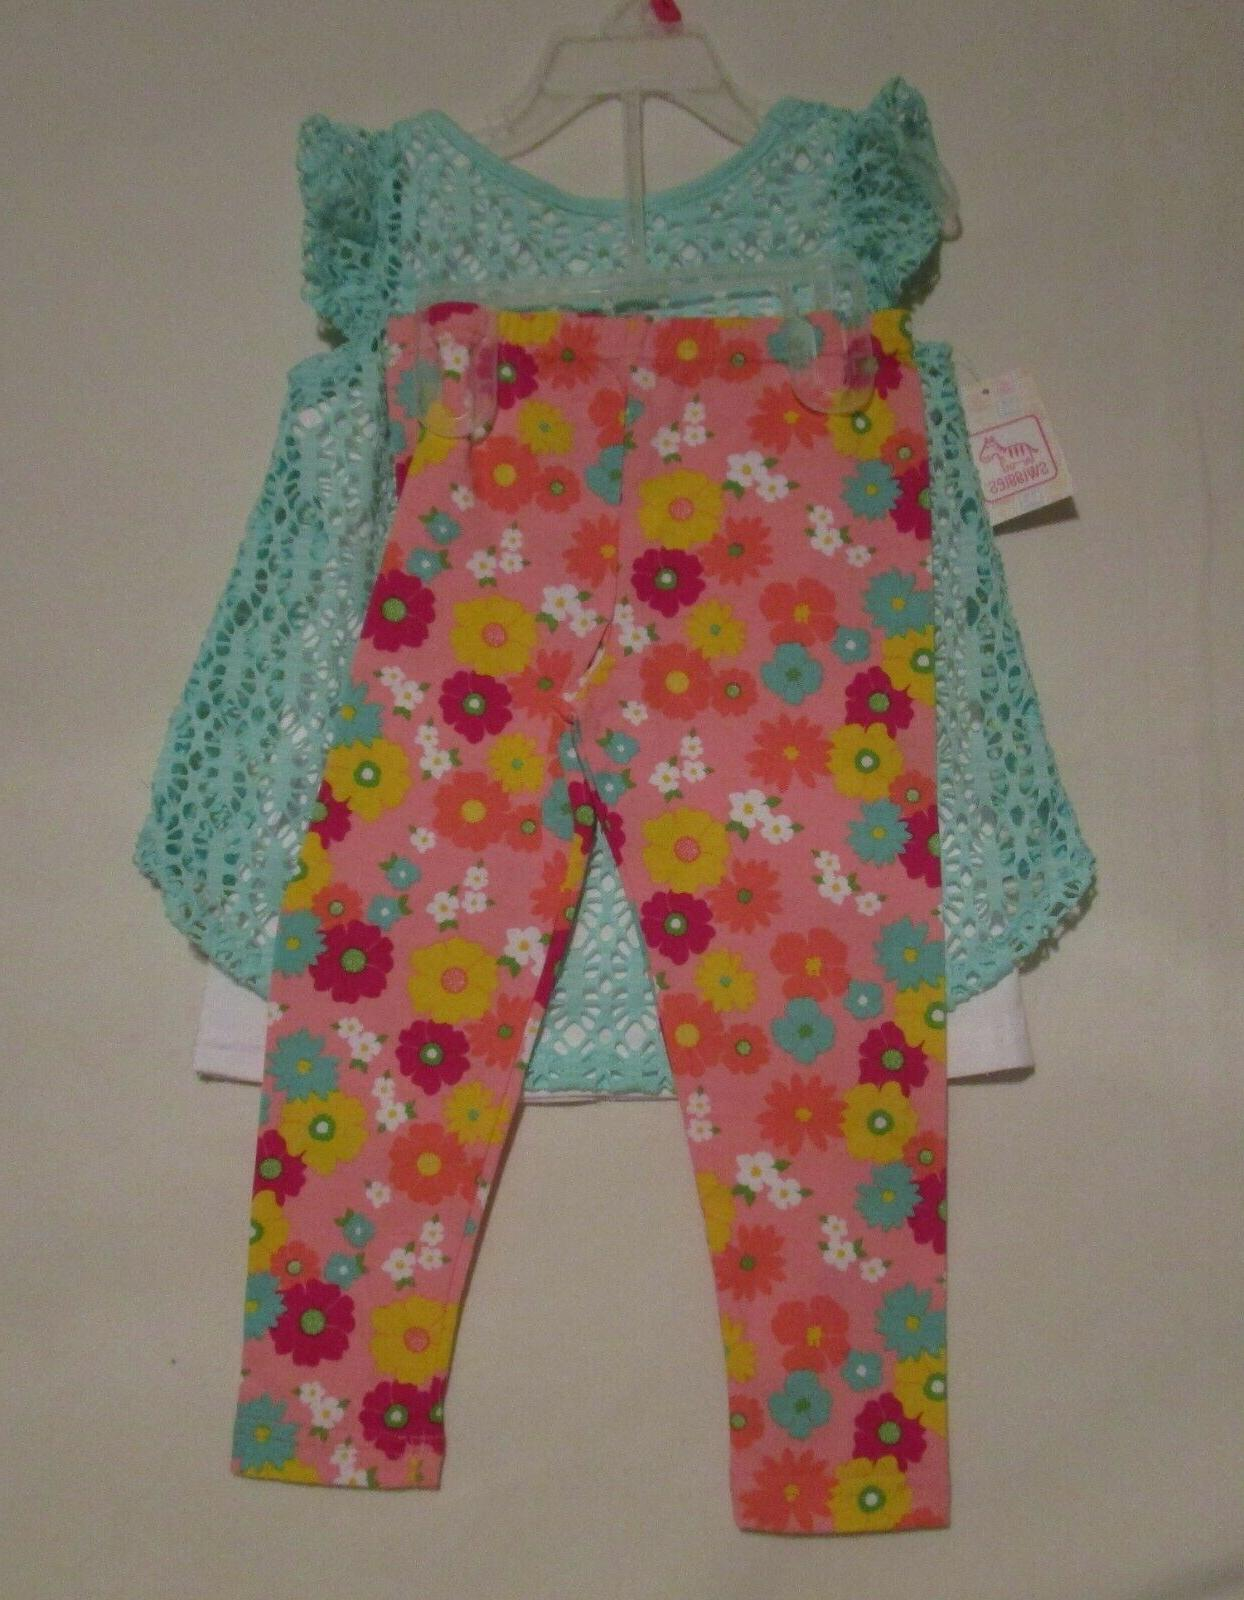 NWT Cap Sleeves, Lace over Top Floral Knit Pants 12 mo